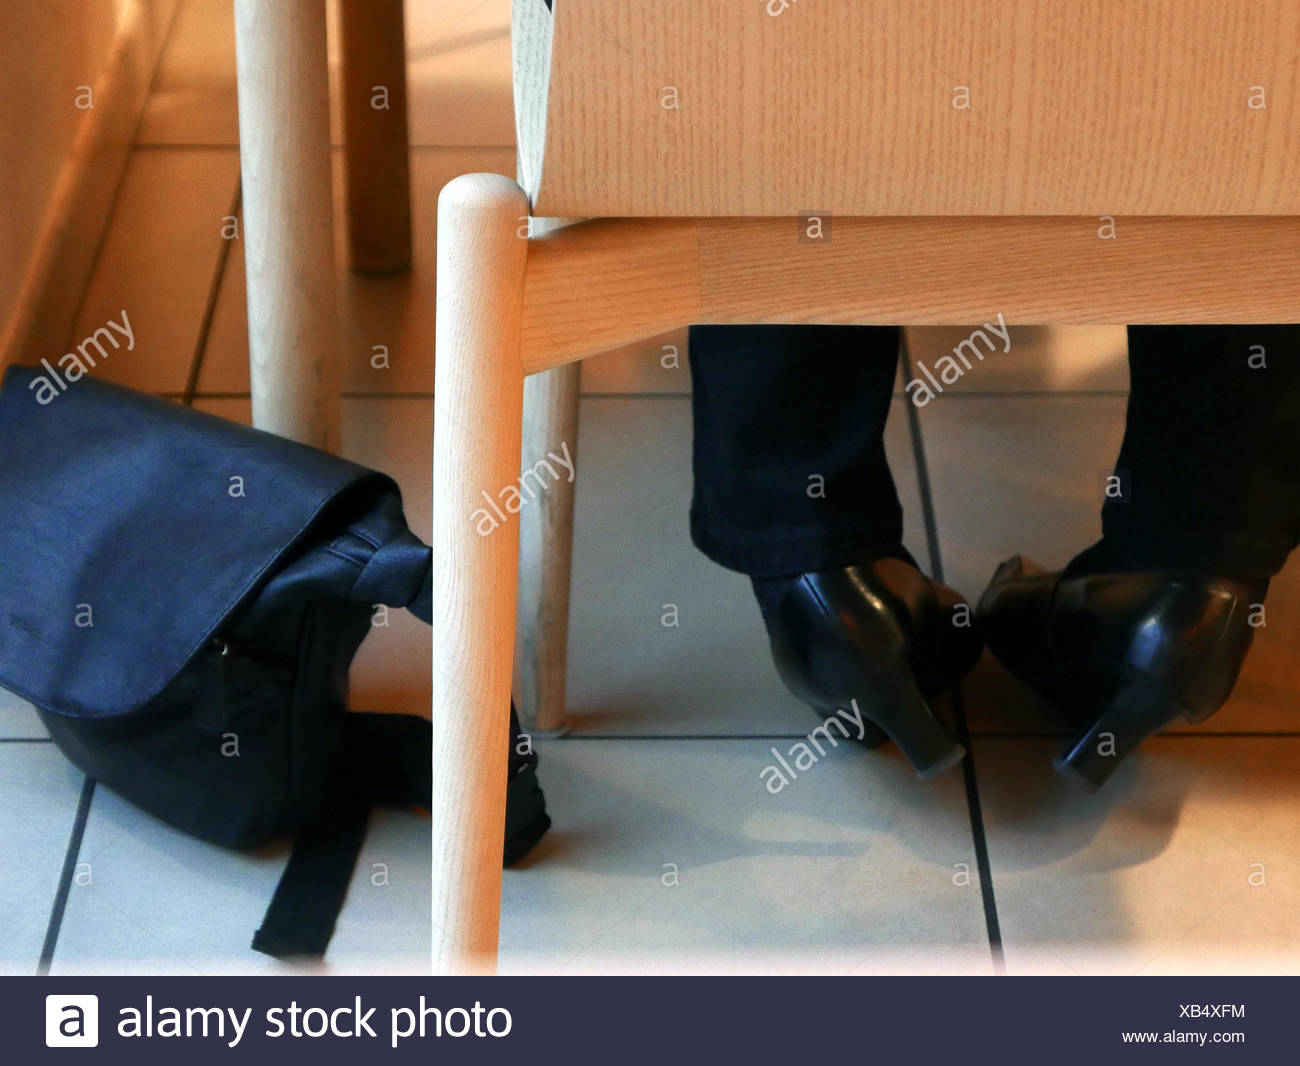 Low Section Of Woman With High Heels At Restaurant - Stock Image